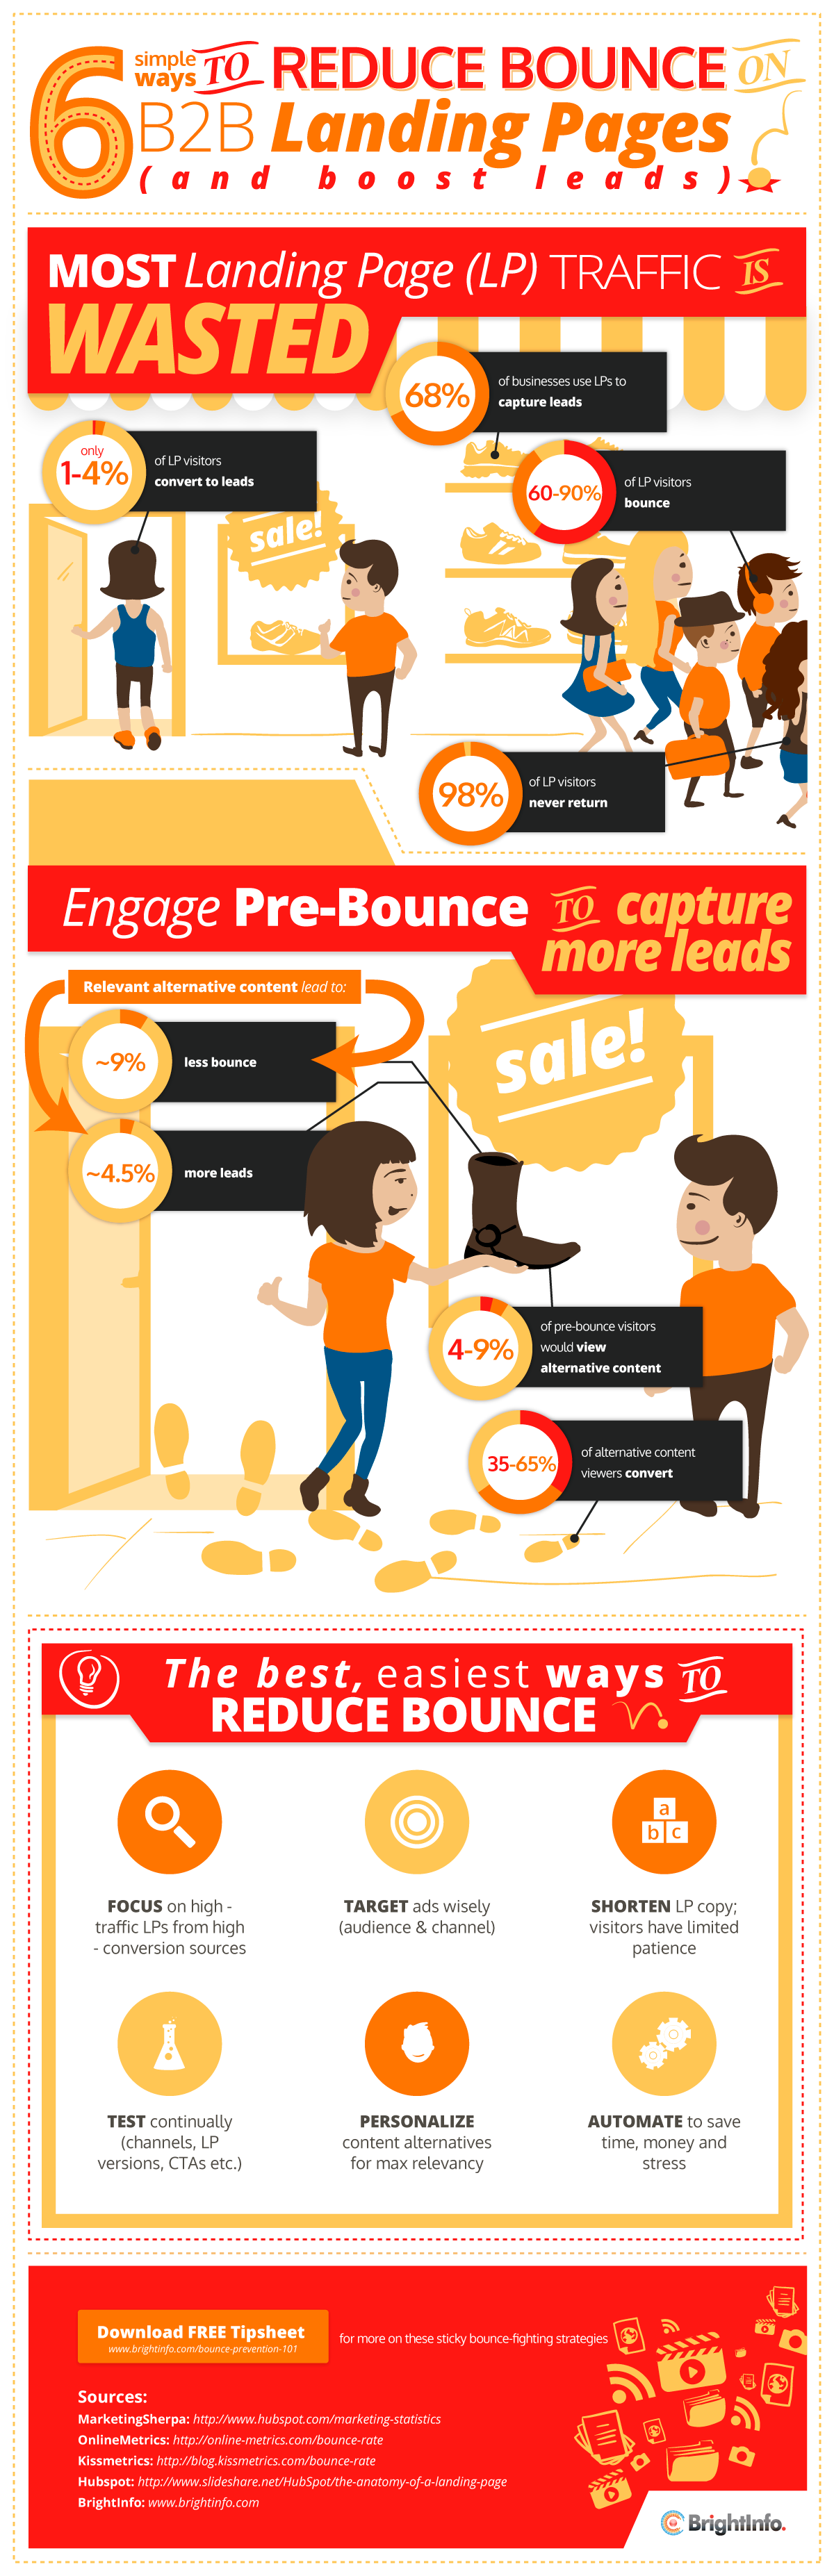 Infographic: 6 Simple Ways to Reduce Bounce on B2B Landing Pages (and boost leads)